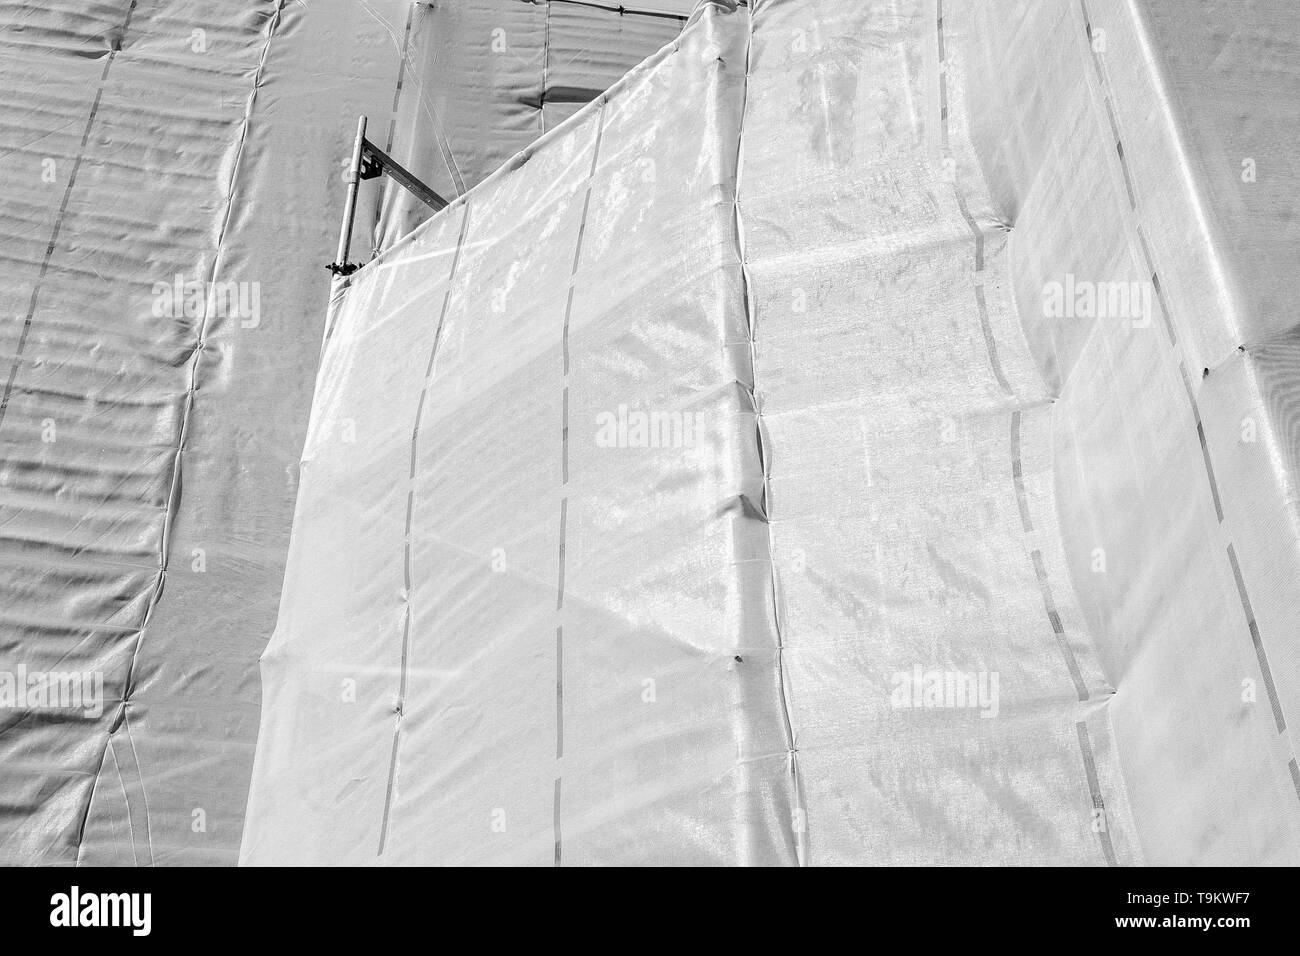 Plastic safety net and scaffolding around a building which is restored in black & white. - Stock Image